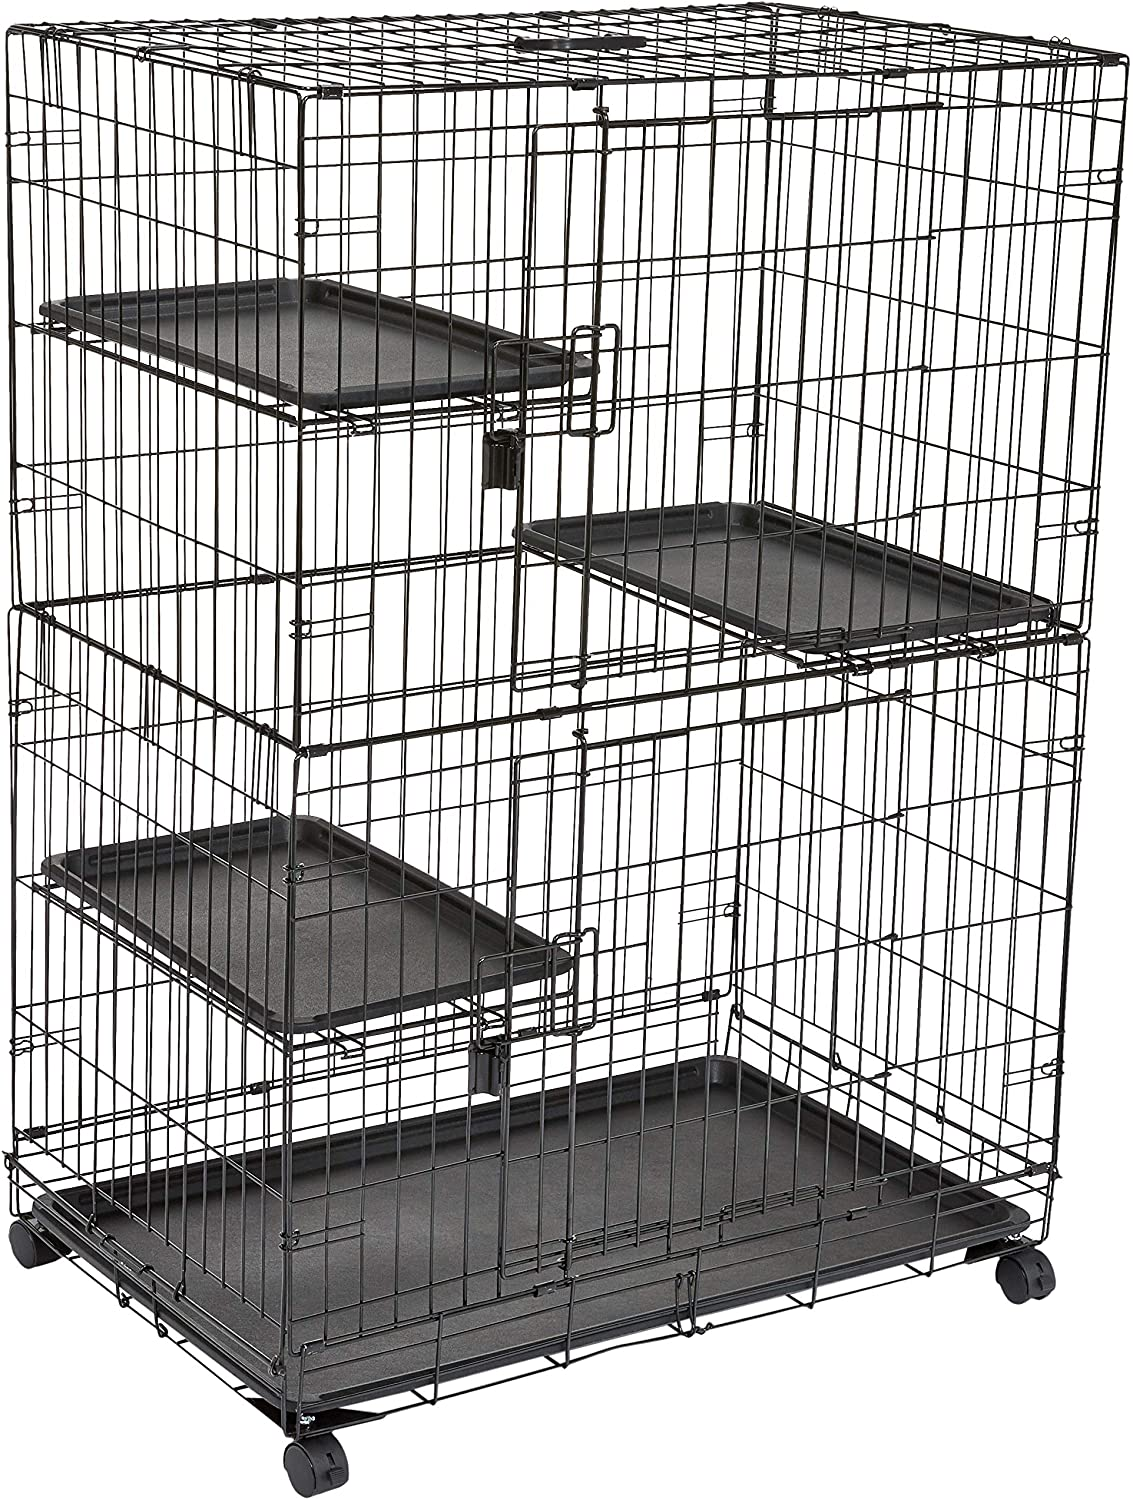 Amazon Basics 3-Tier Cat Cage